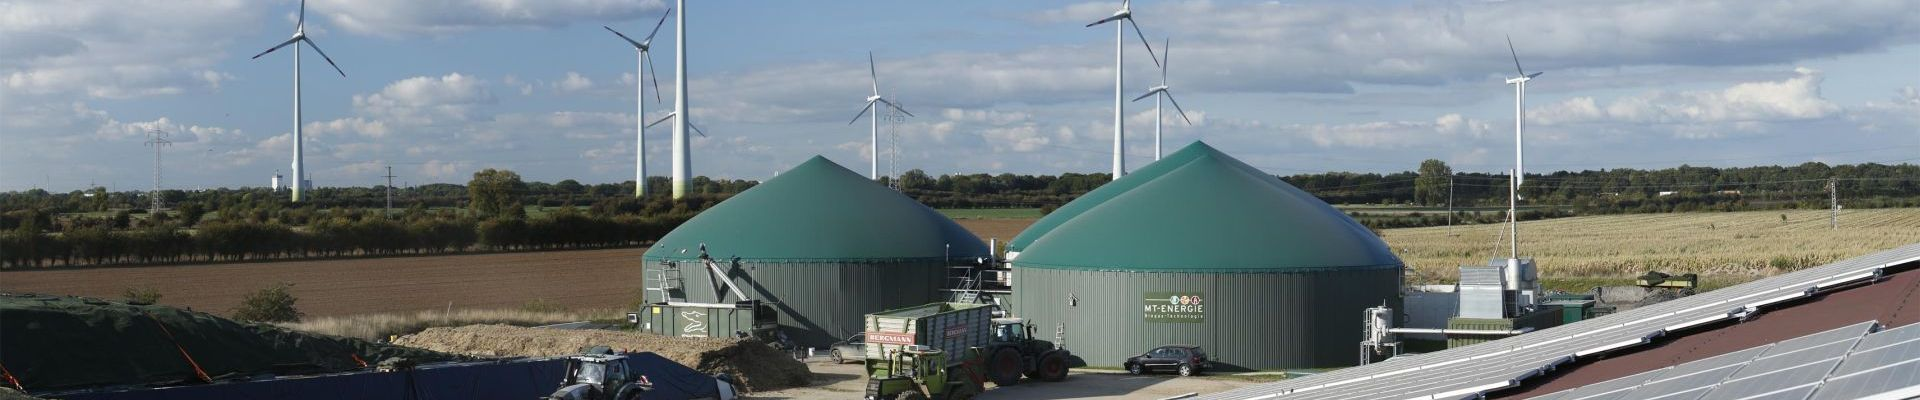 Biogas plant for flexibility generation